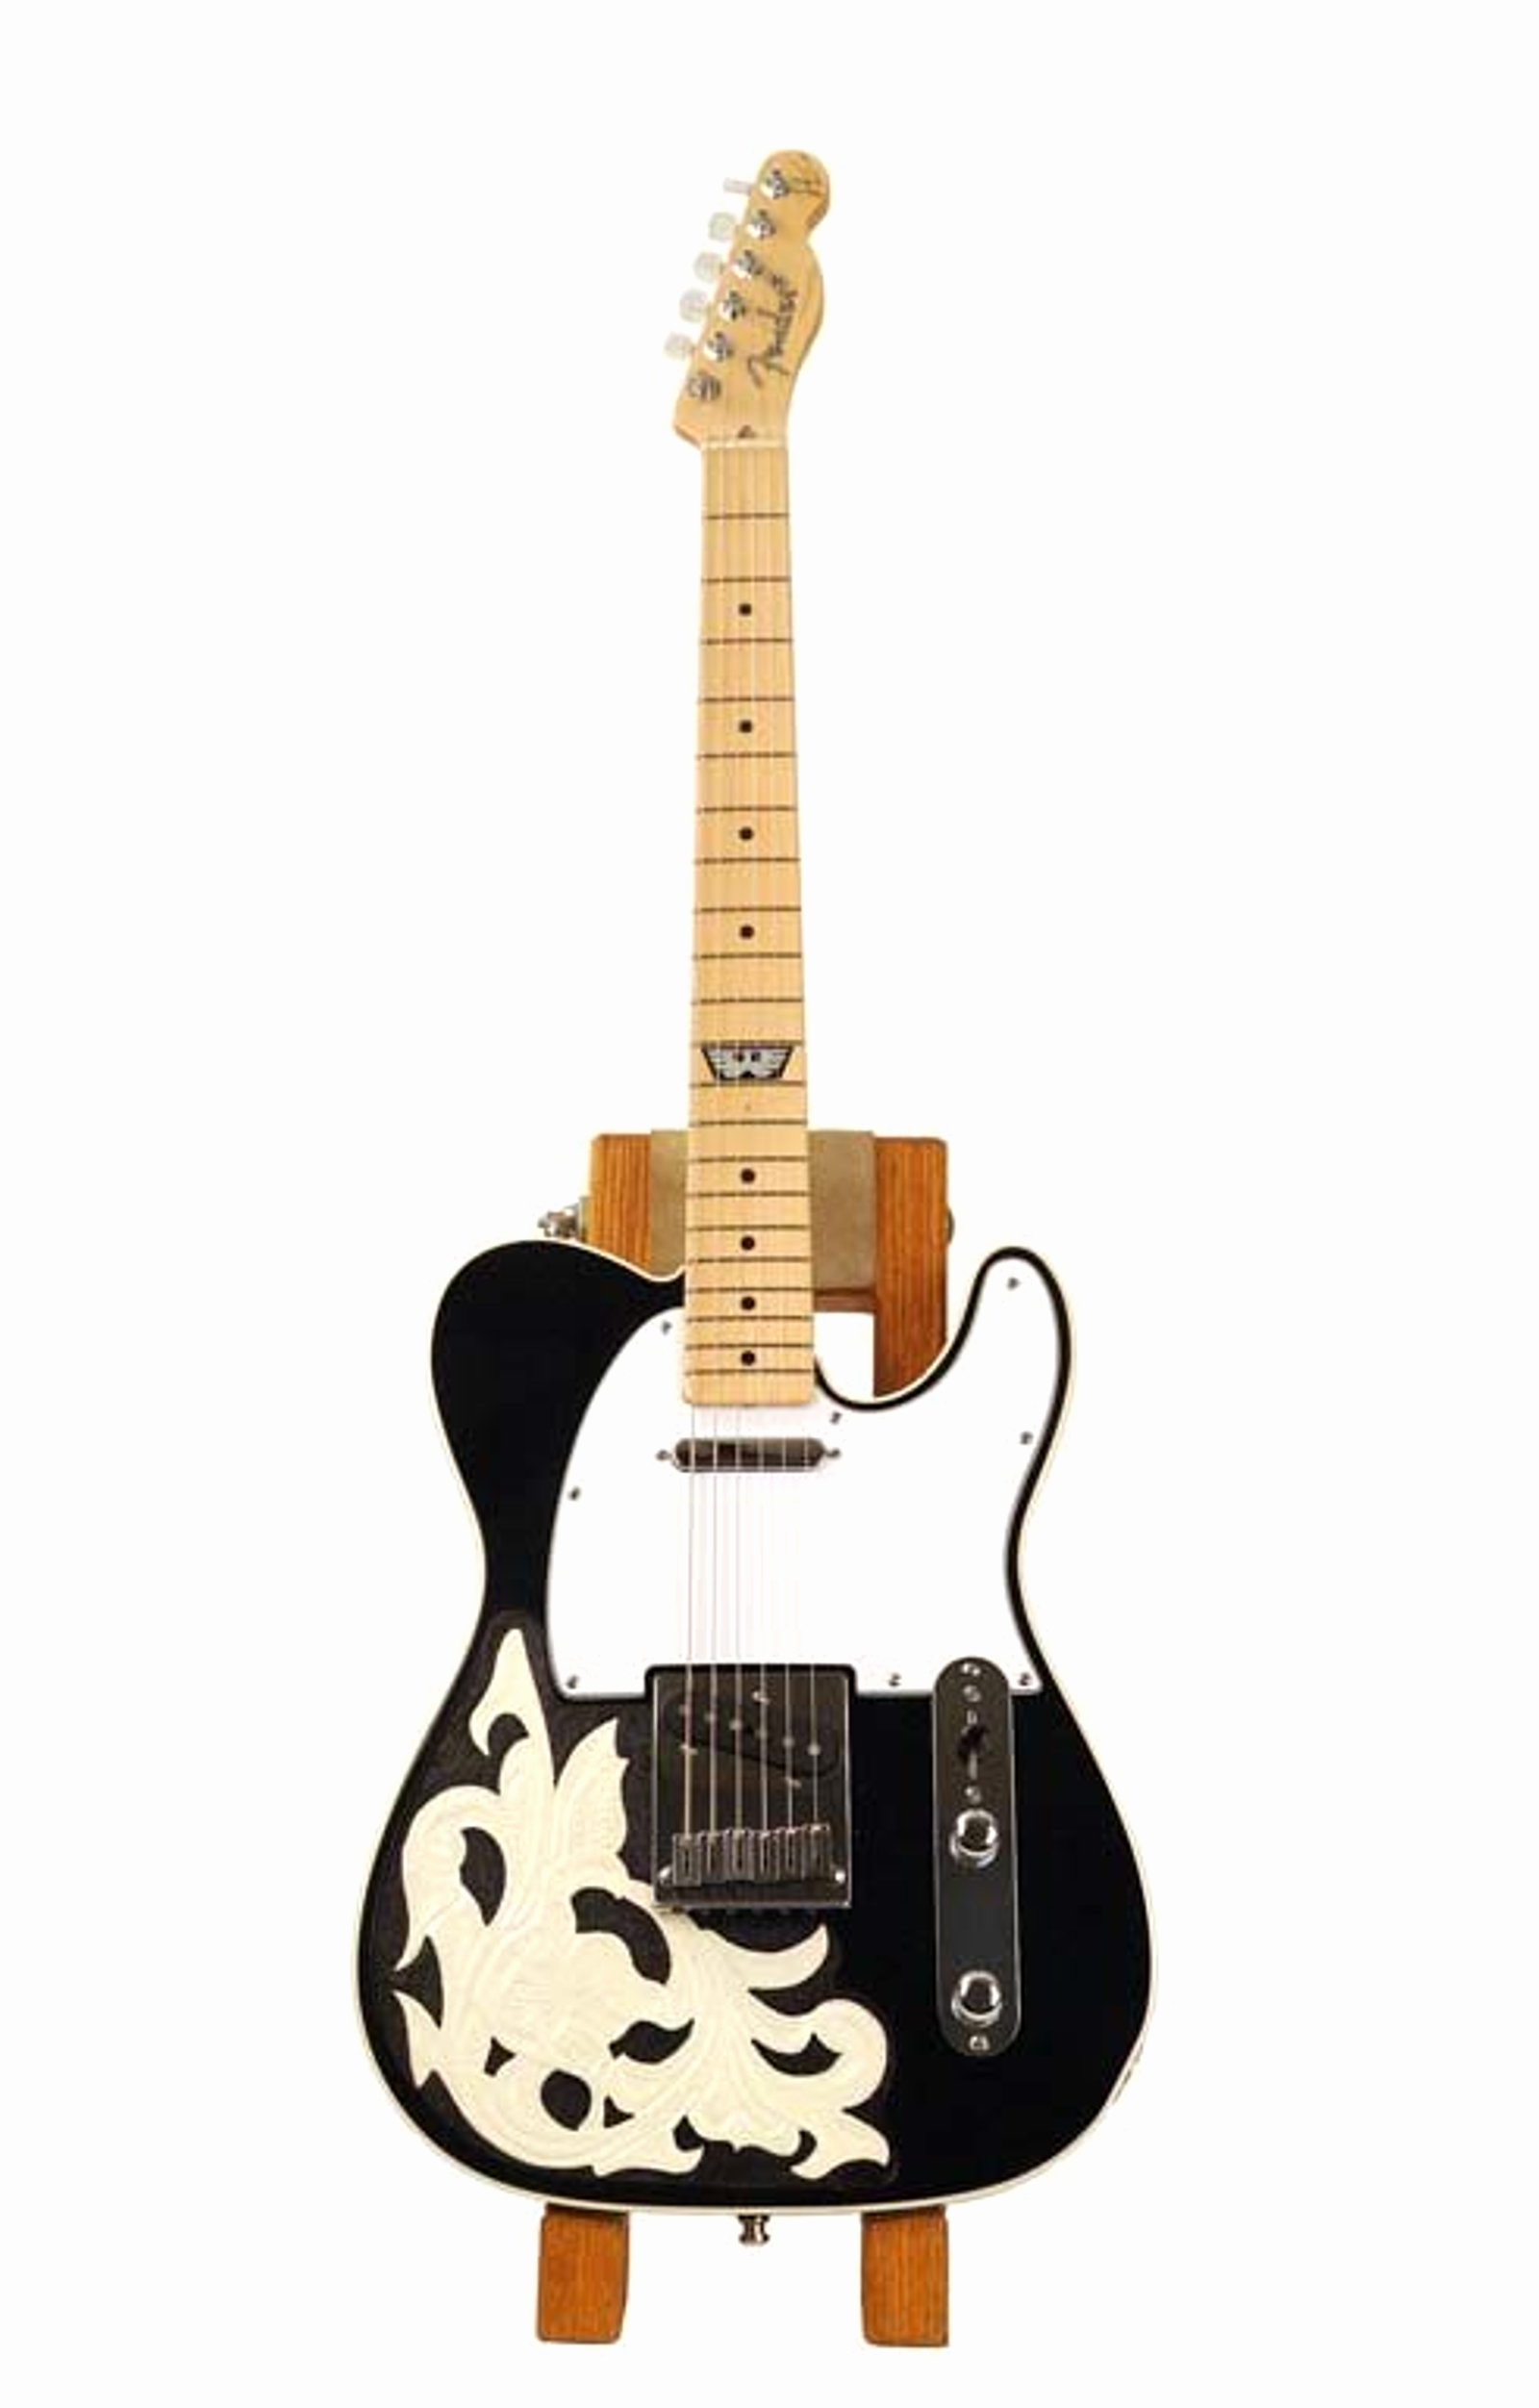 Telecaster Drawing At Free For Personal Use Ukulele String Diagram Download Wiring Schematic 1600x2503 Fender Guitar Drawings Picture Best Of Custom Shop Waylon